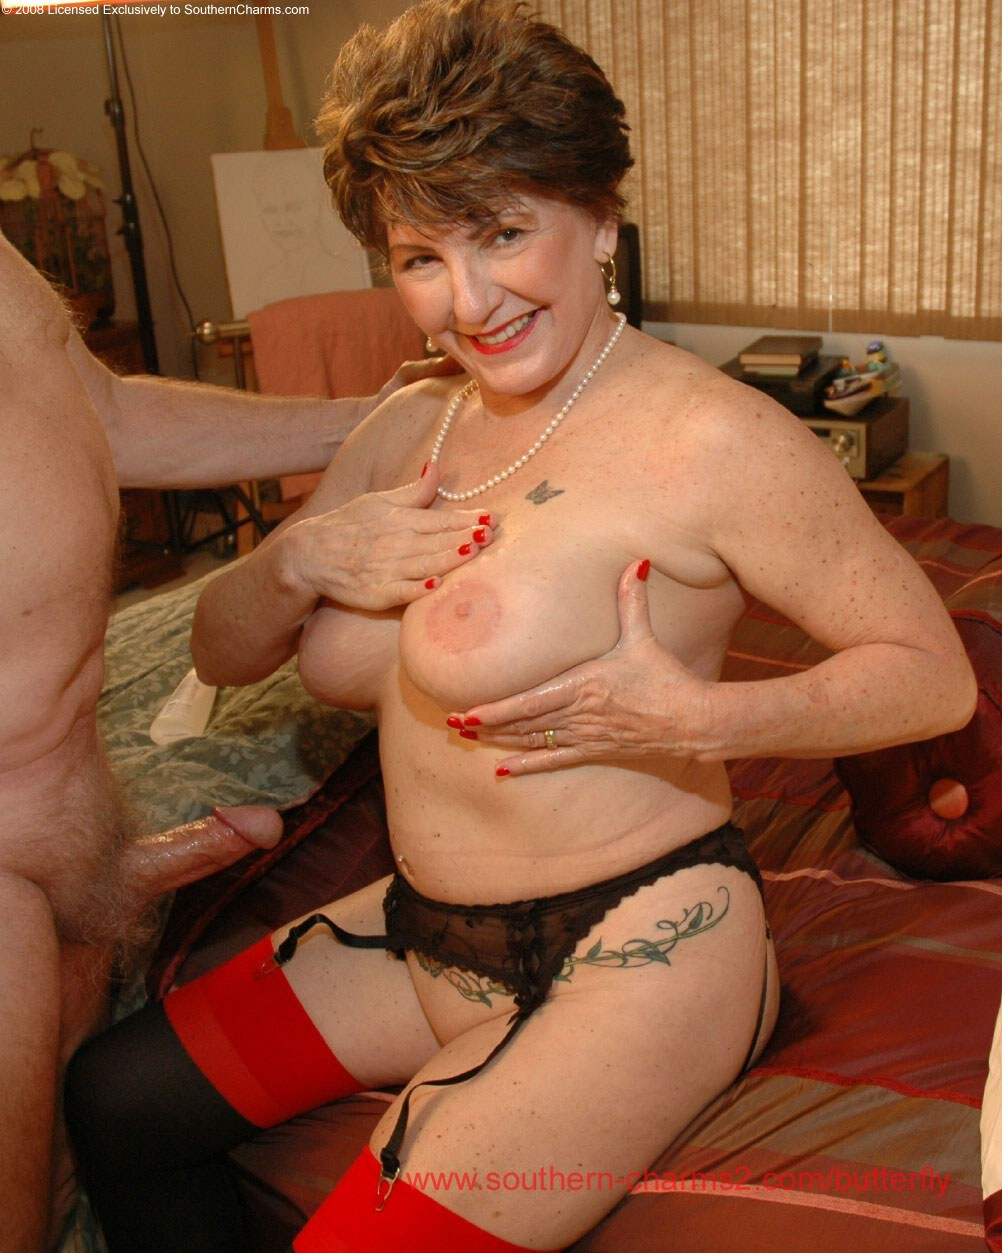 Southern charms matures lesbian